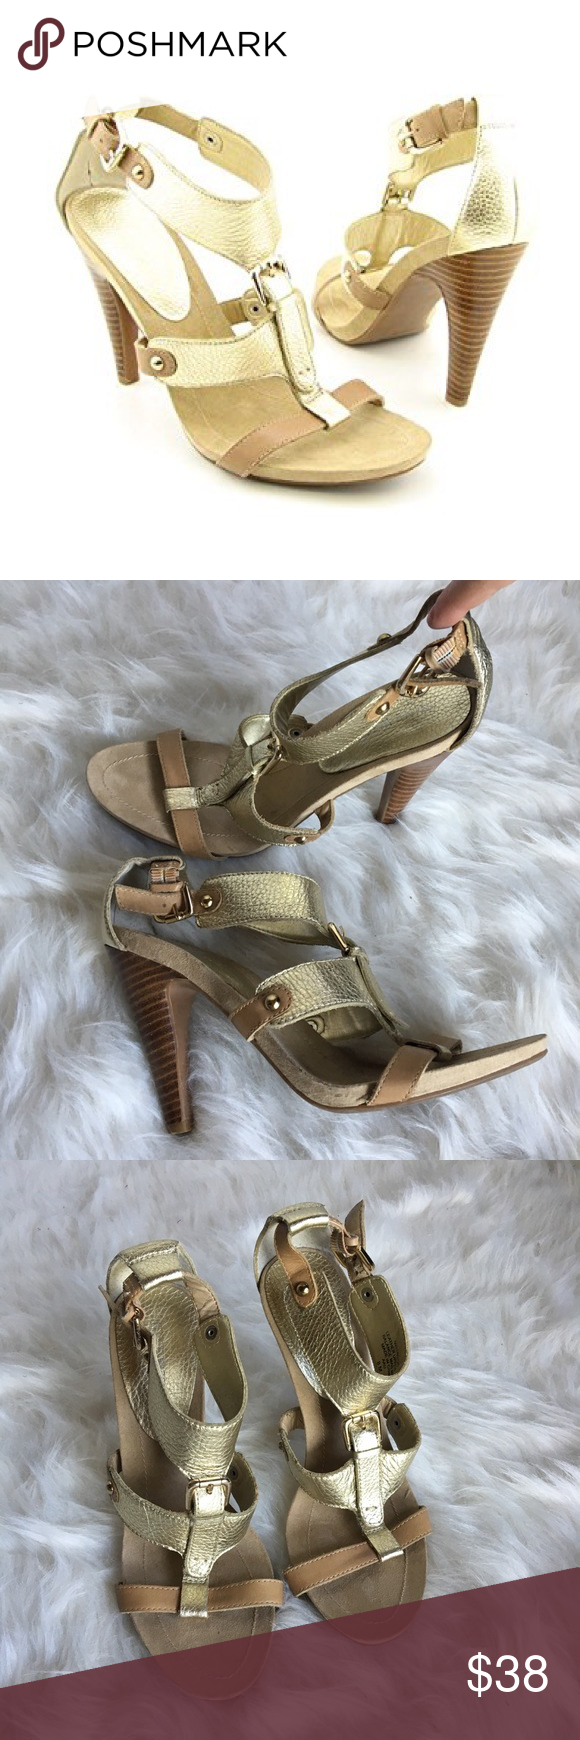 84f7db283ce2e Nine West Snooks gladiator leather strappy heels 8 Lovely Nine West gold  and tan strappy heeled sandals. The style is Snooks